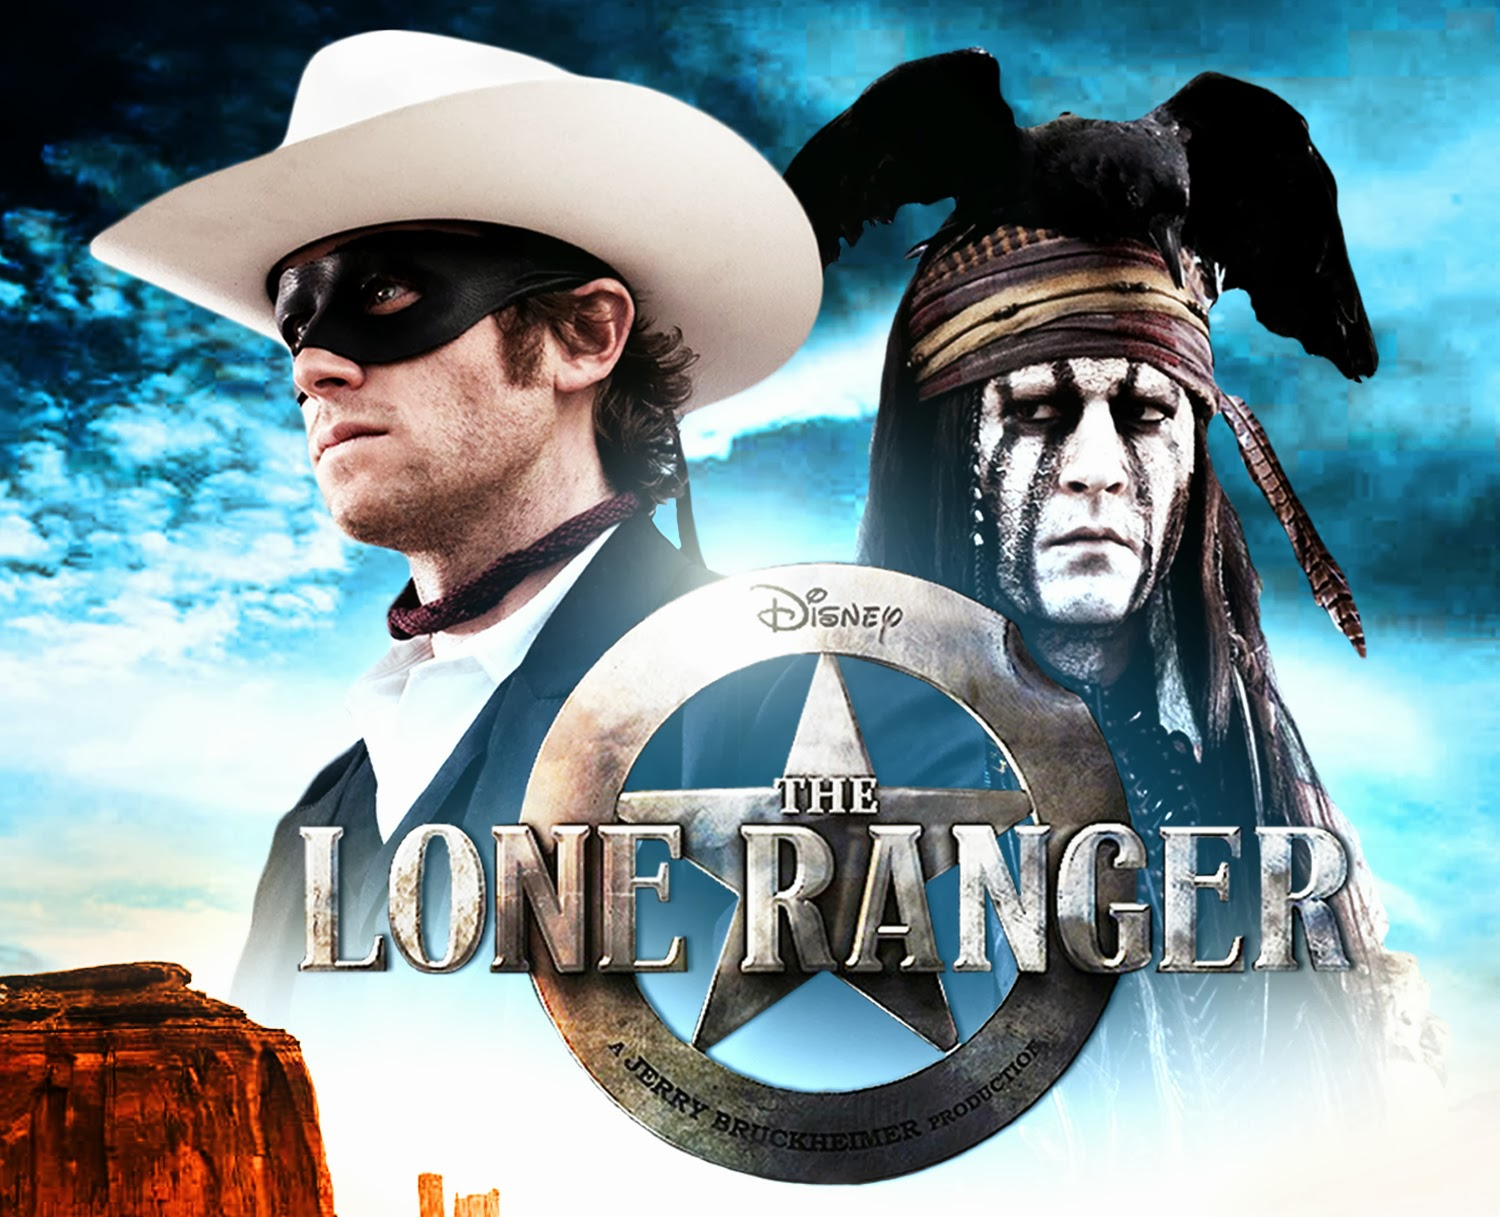 The Lone Ranger torrent download | Top Movies